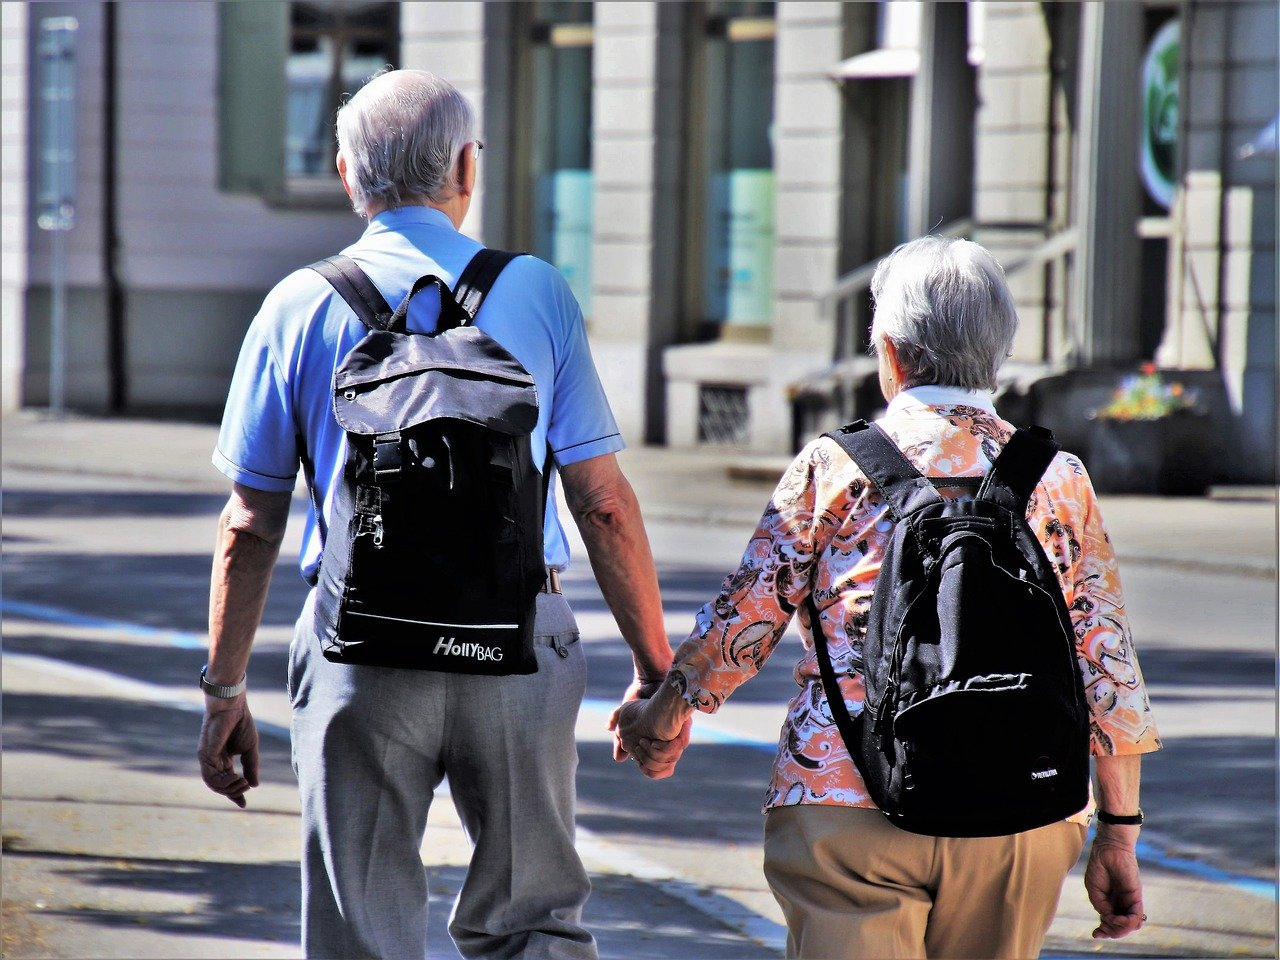 An elderly couple taking a walk after moving to one of the best NJ cities for retirees.